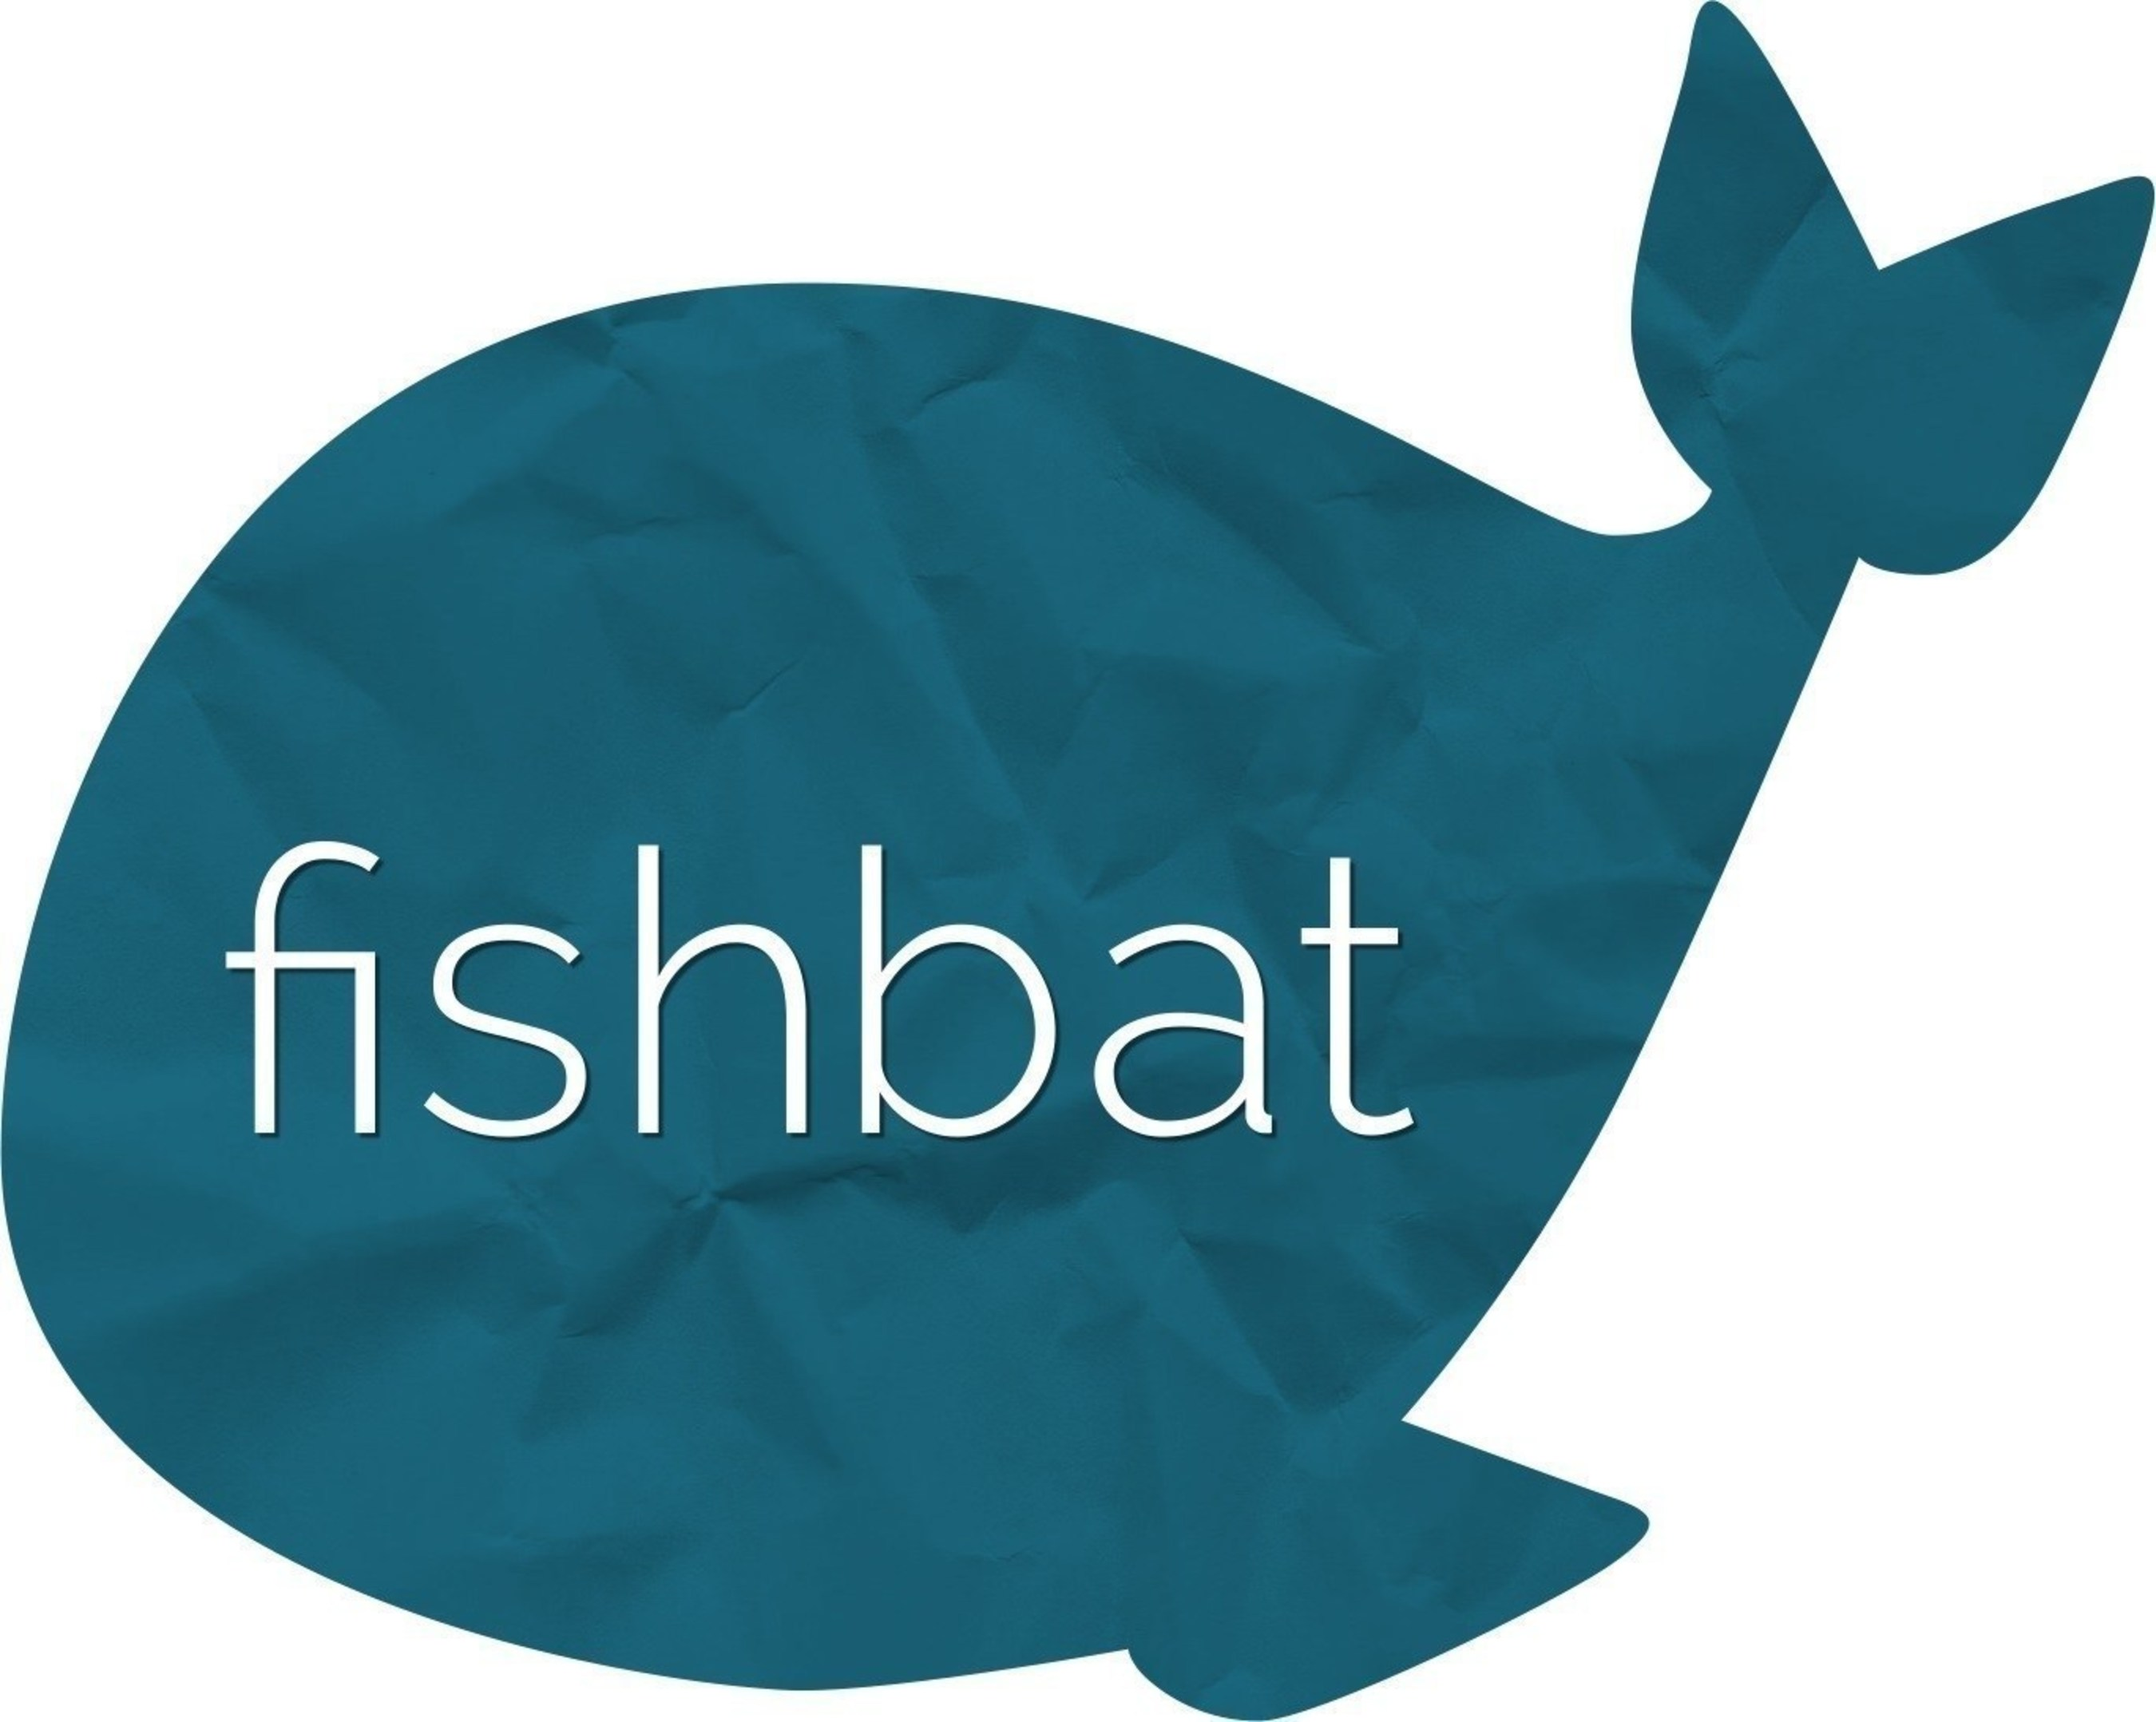 Online Marketing Company, fishbat, Shares 4 Instagram Benefits for Food and Beverage Companies